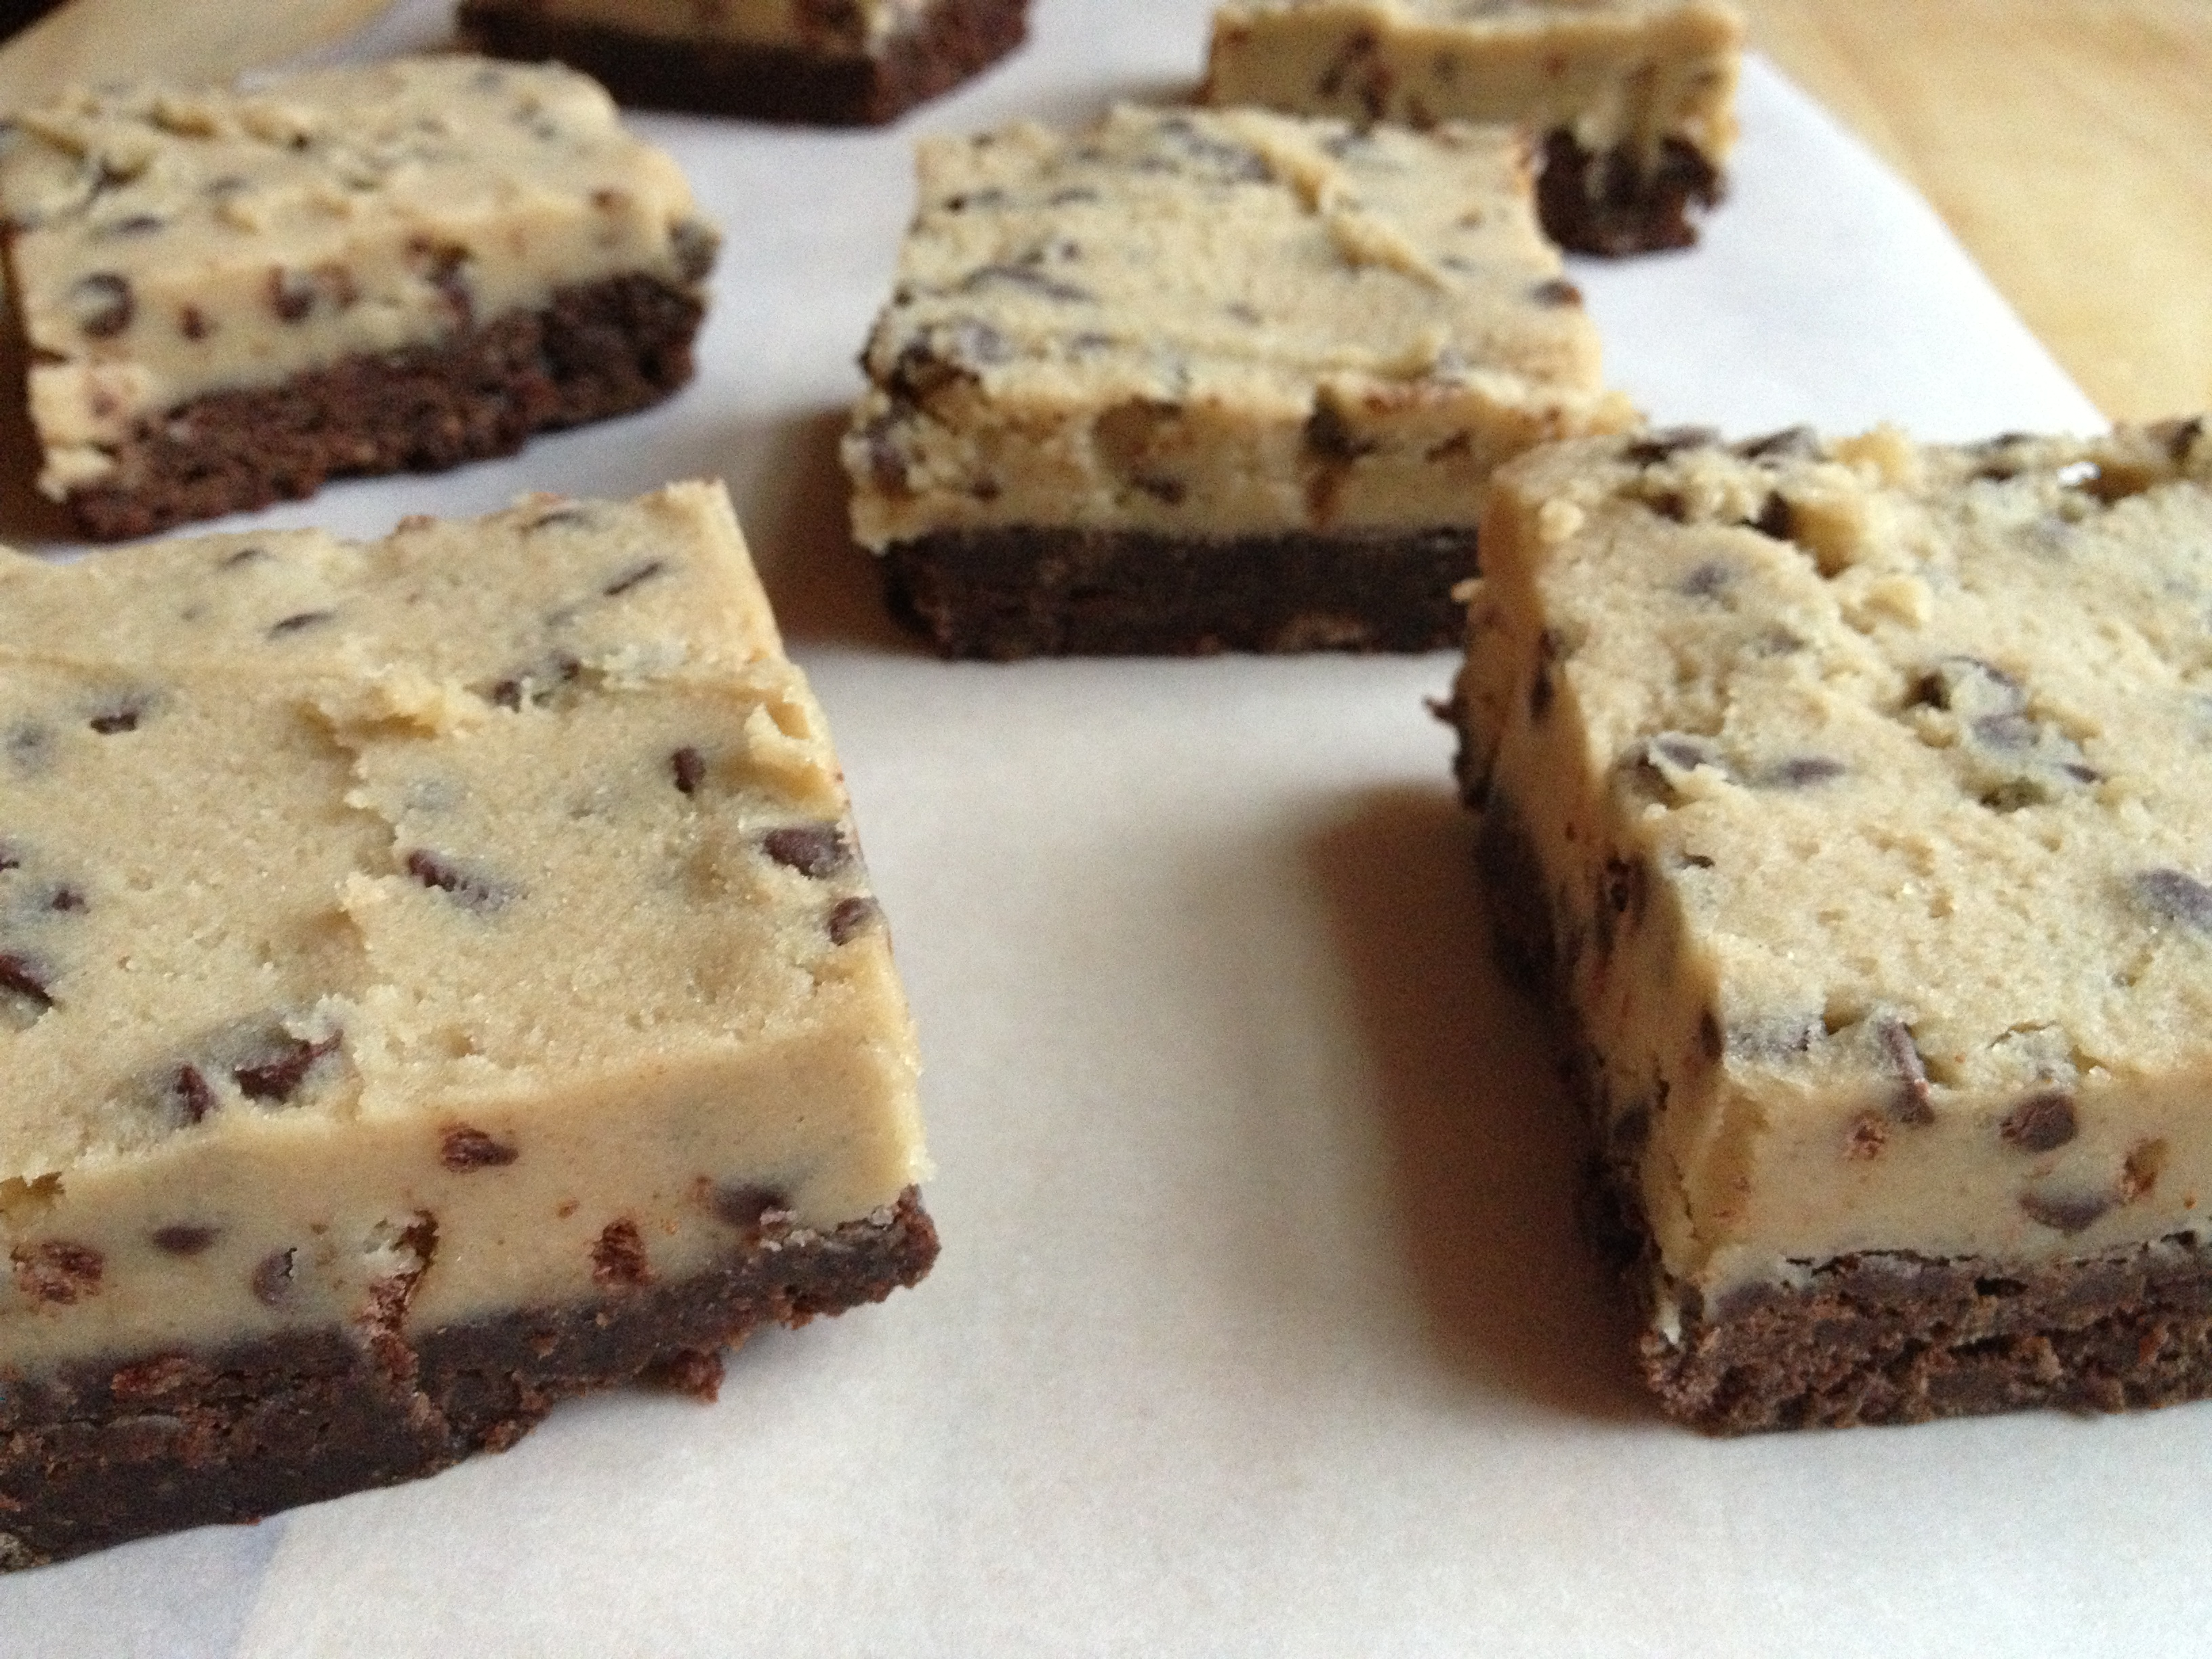 Chocolate Chip Cookie Dough Brownies Bake Not Burn